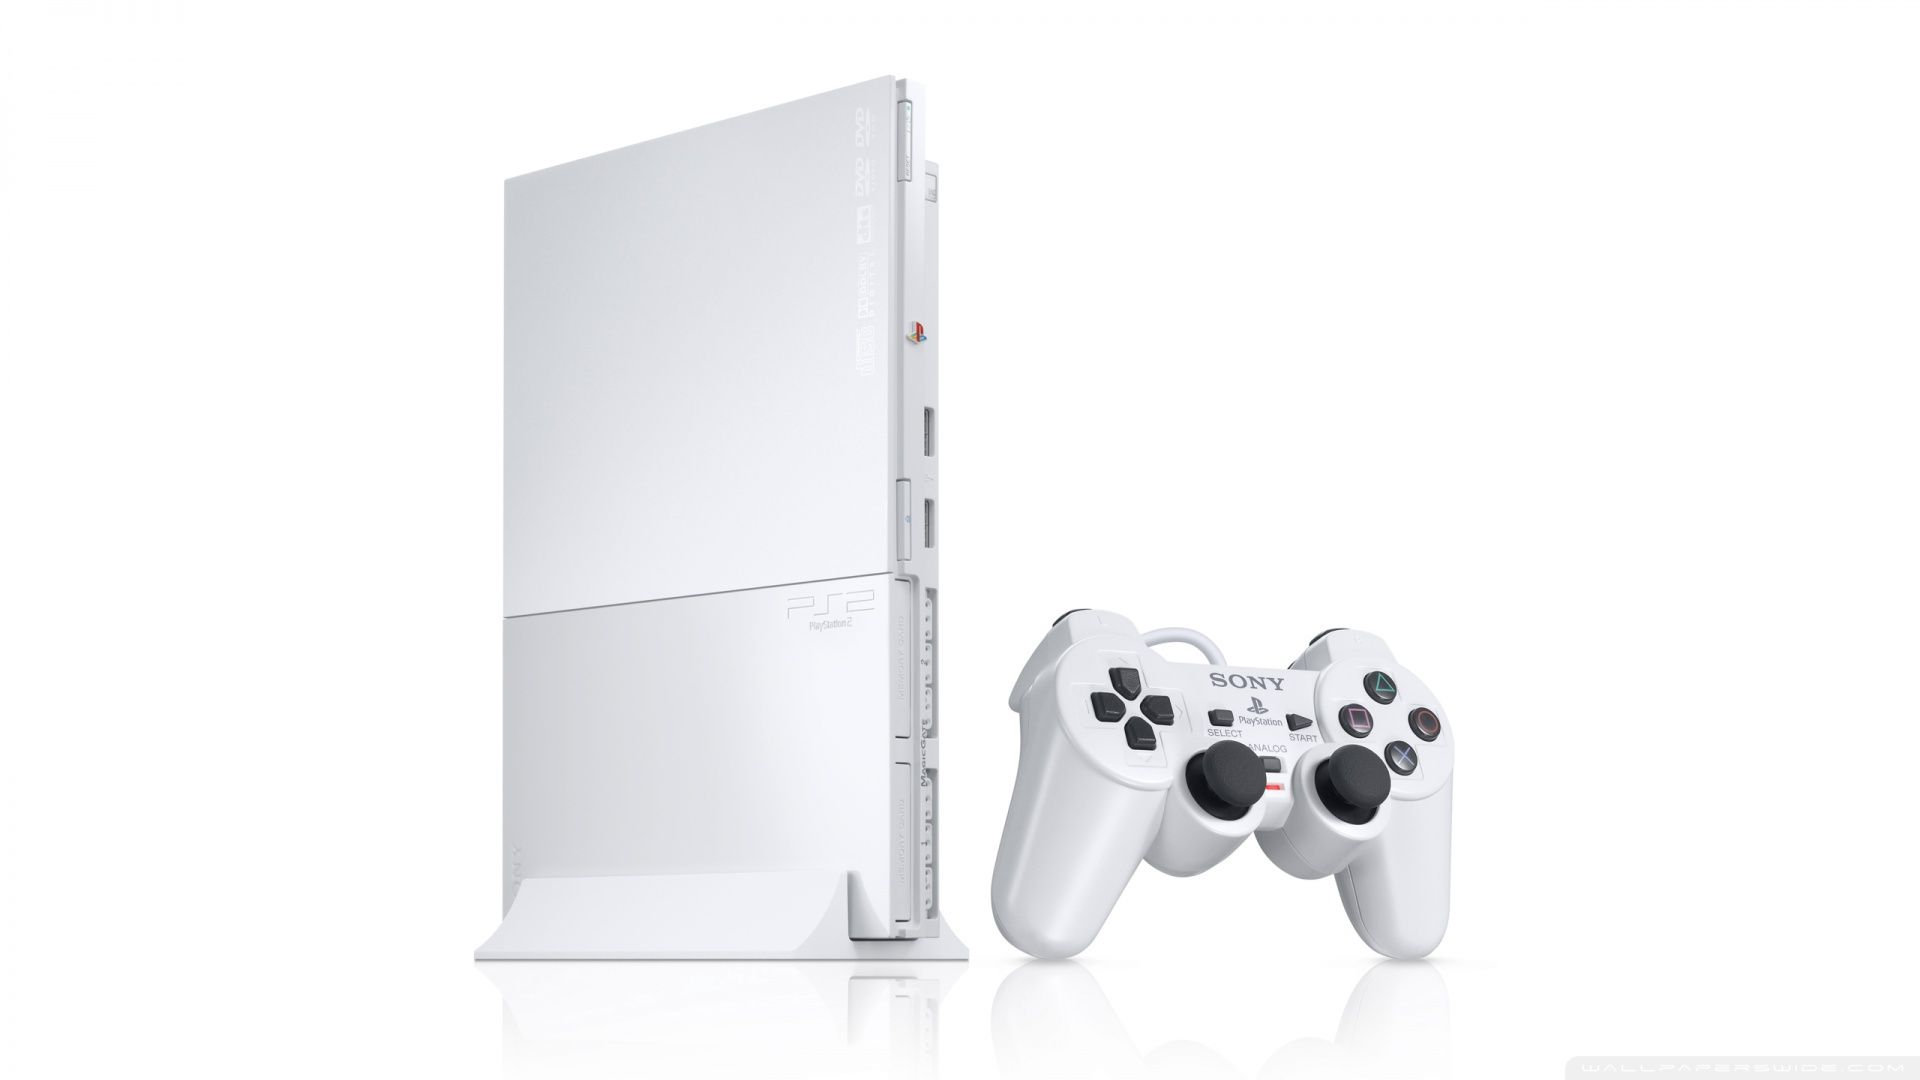 Sony Playstation Wallpaper Background Playstation Game Console Gaming Console